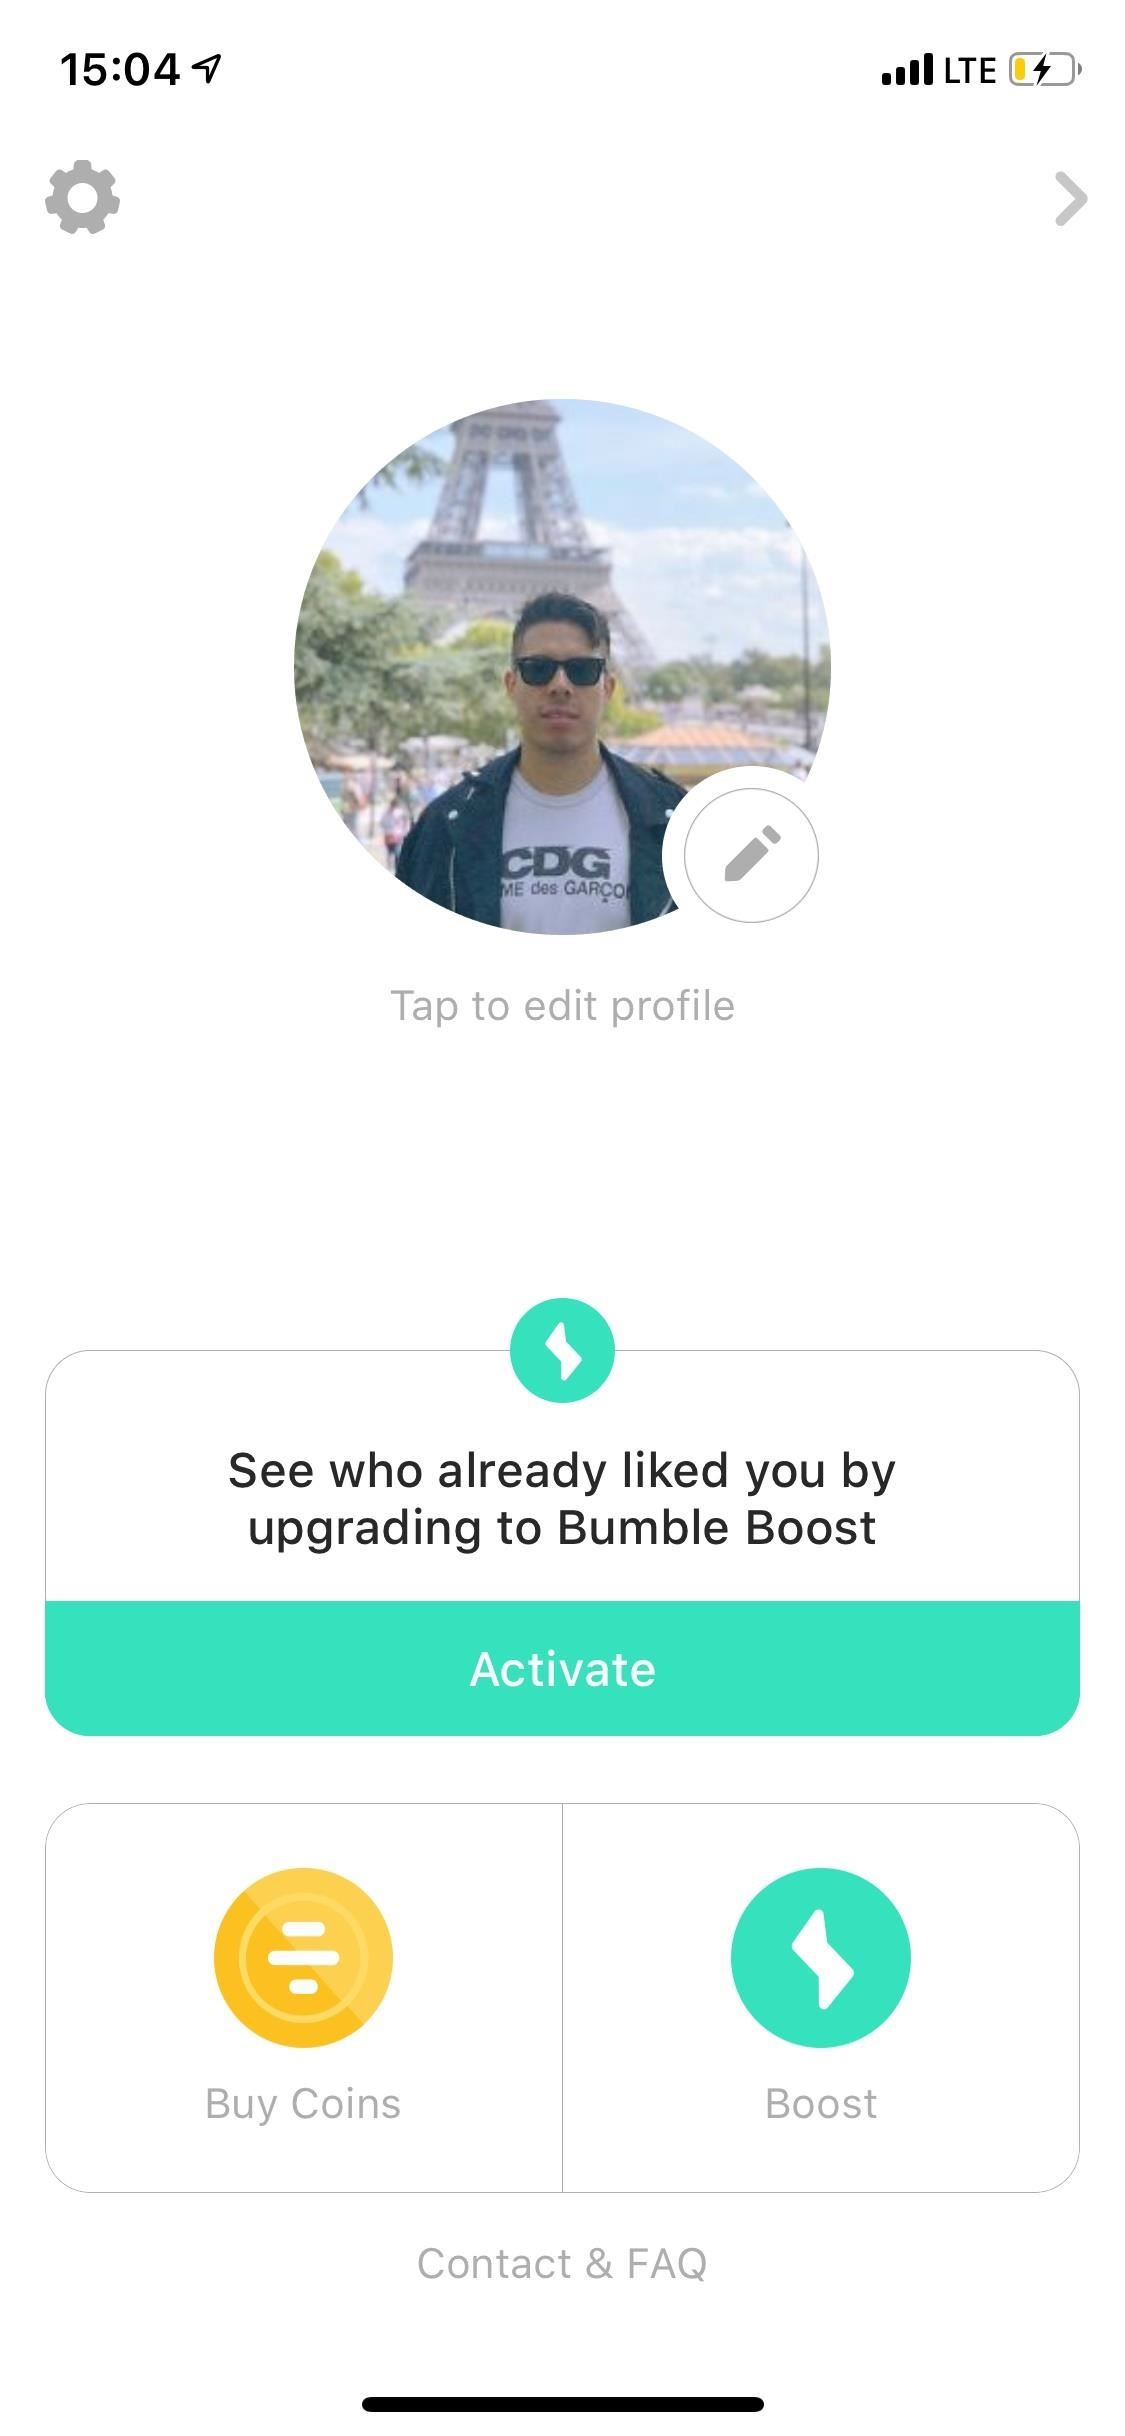 How to Filter Potential Matches on Bumble